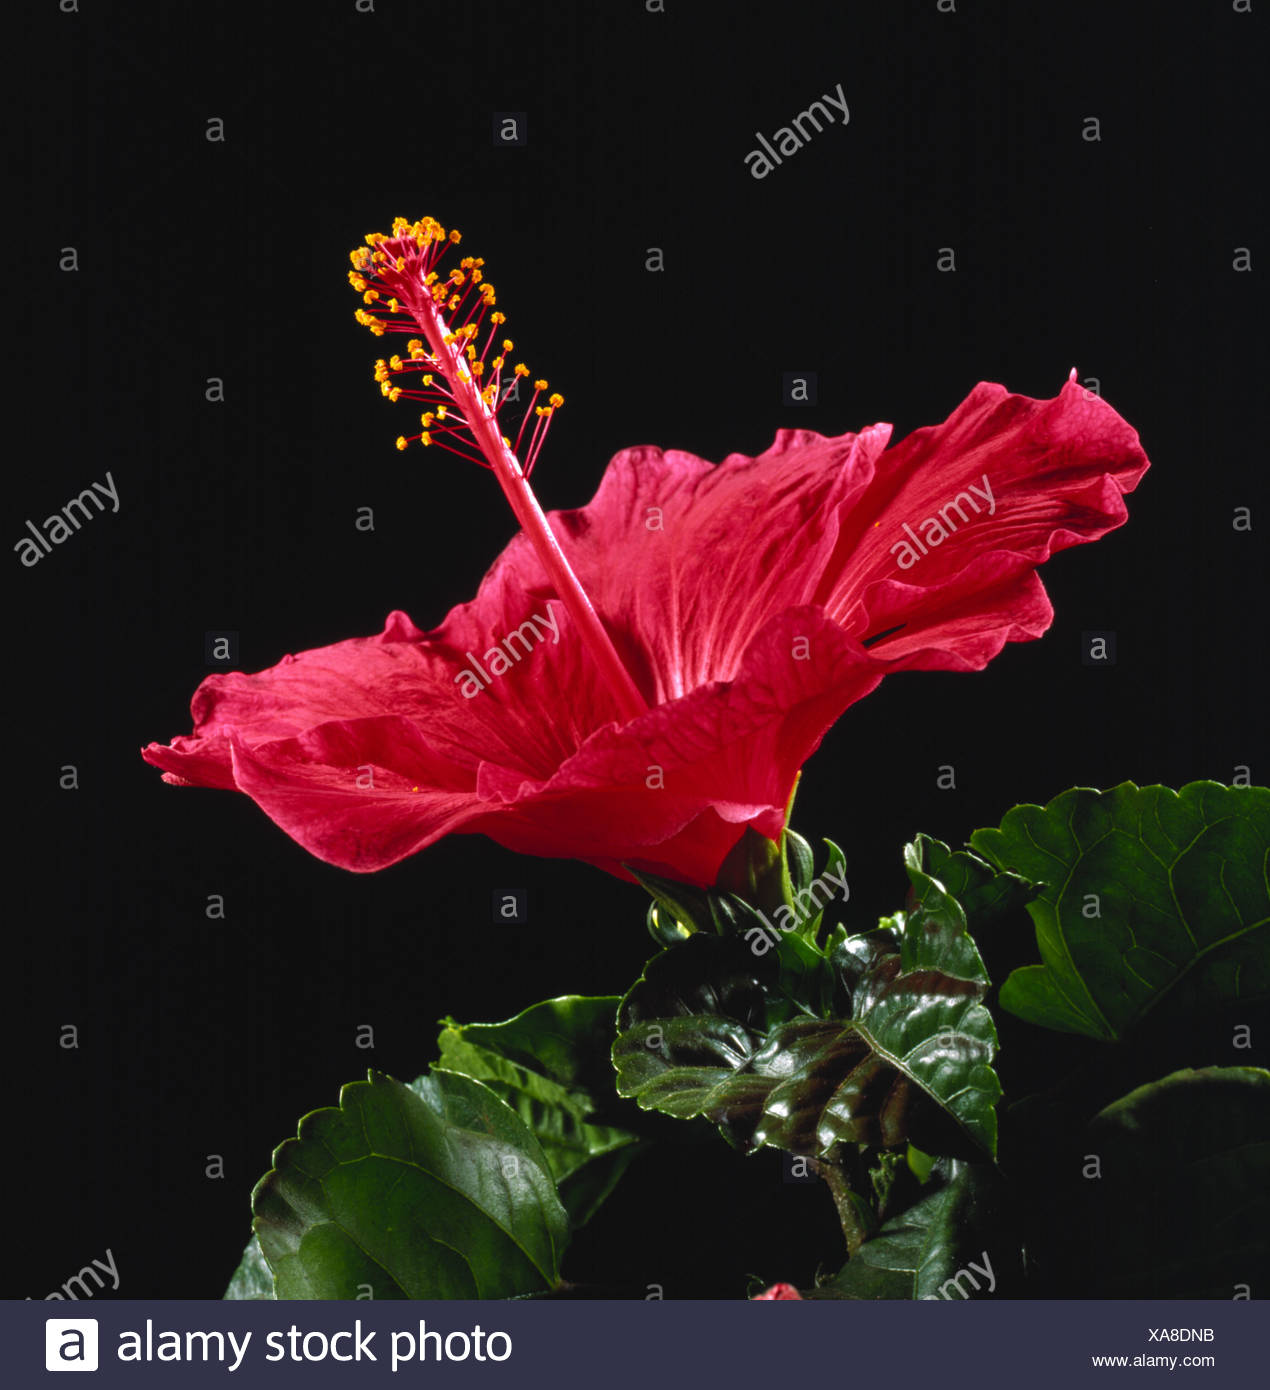 A Red Hibiscus Spp Flower Showing Style Stigma And Stamens Flower